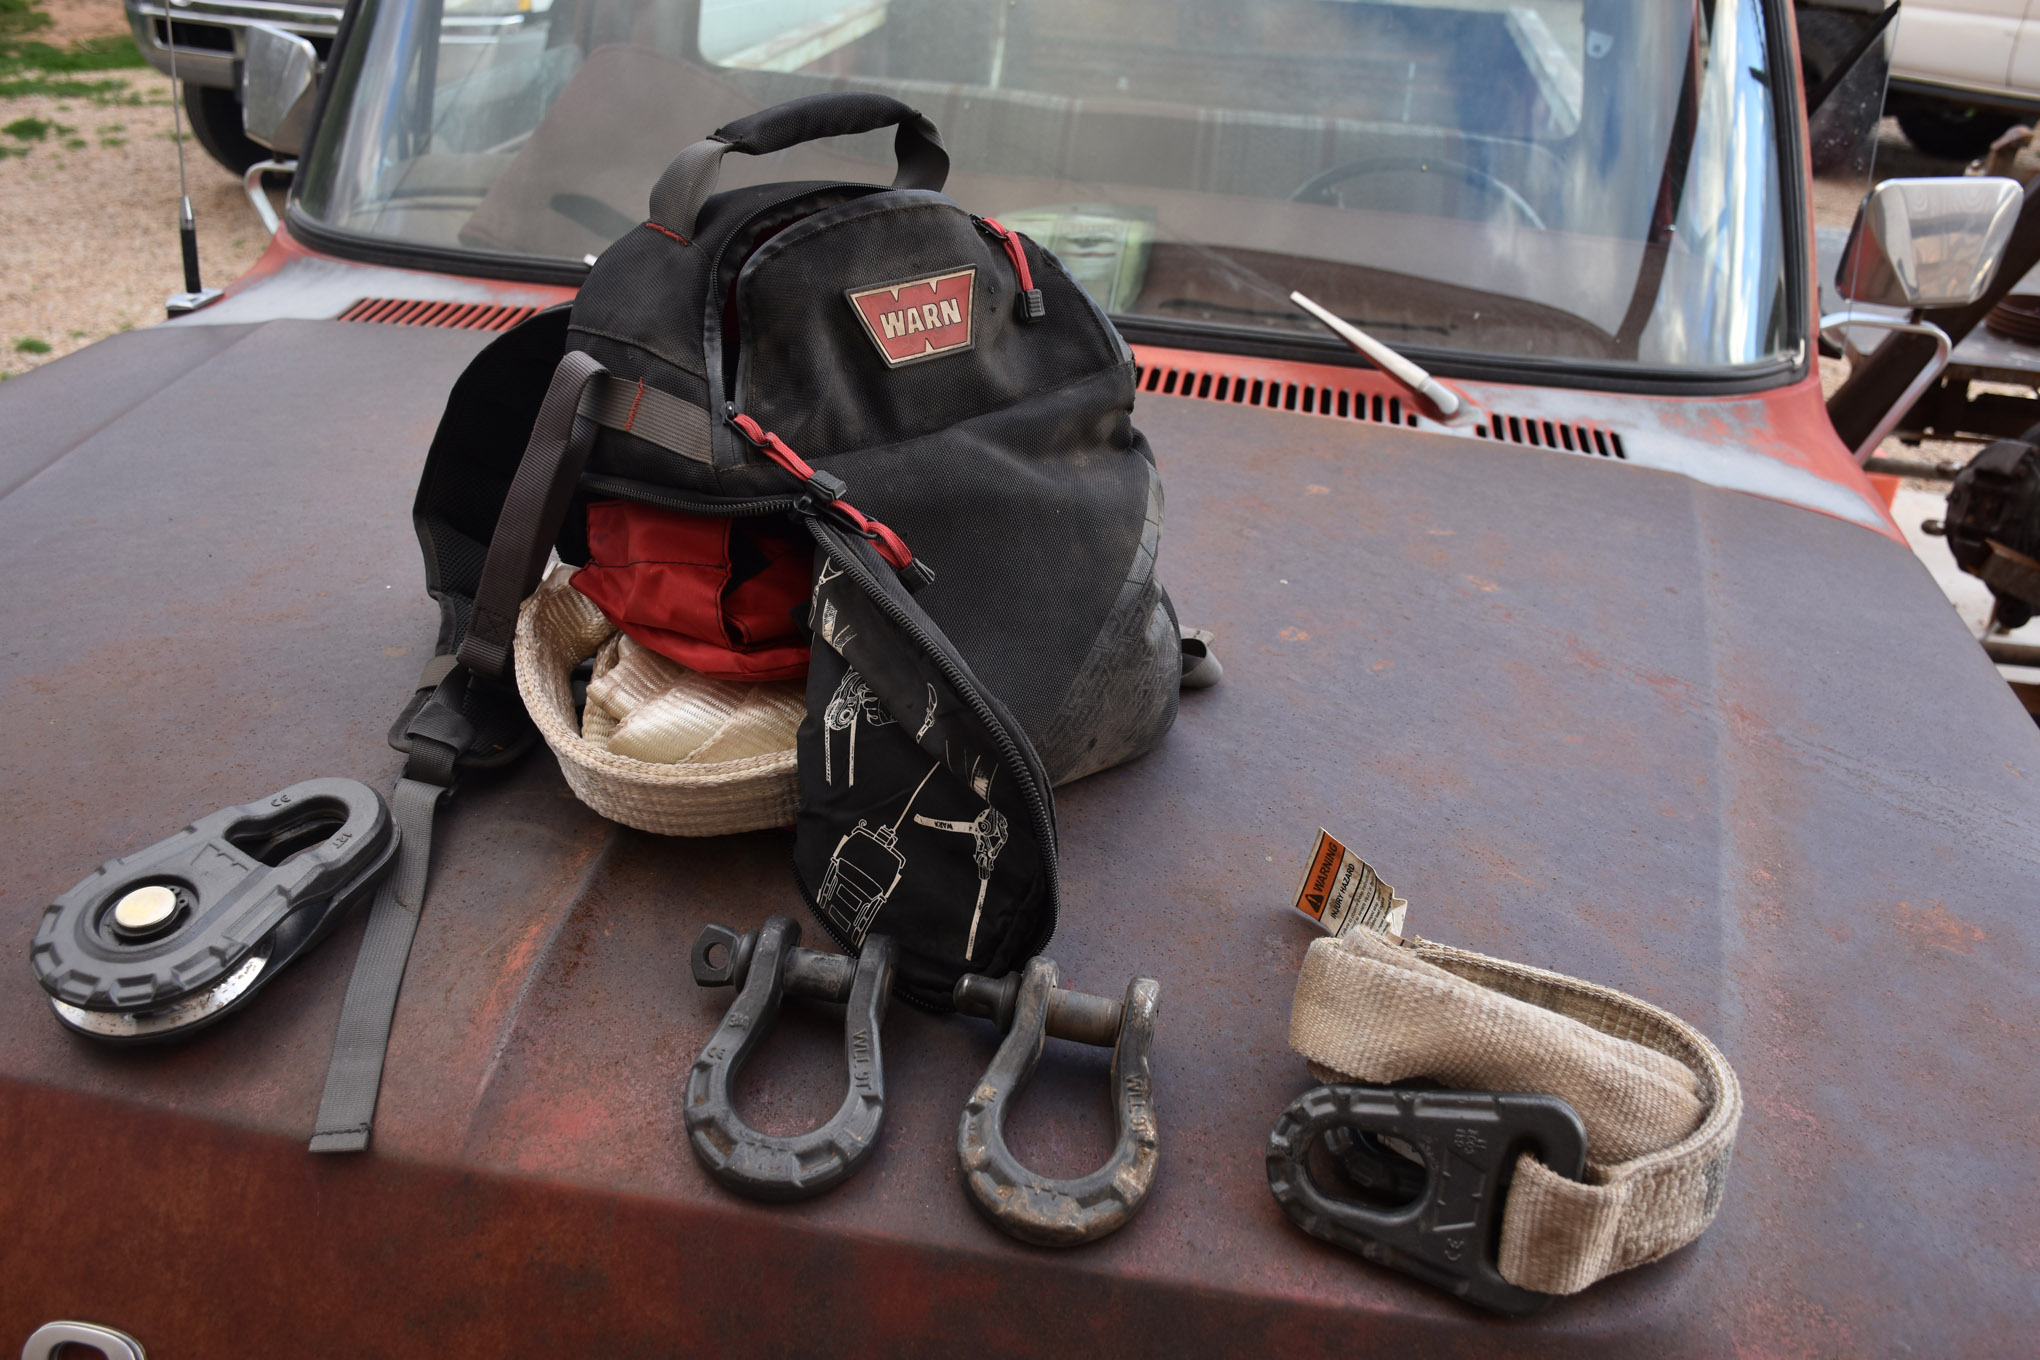 trail tools warn recovery bag